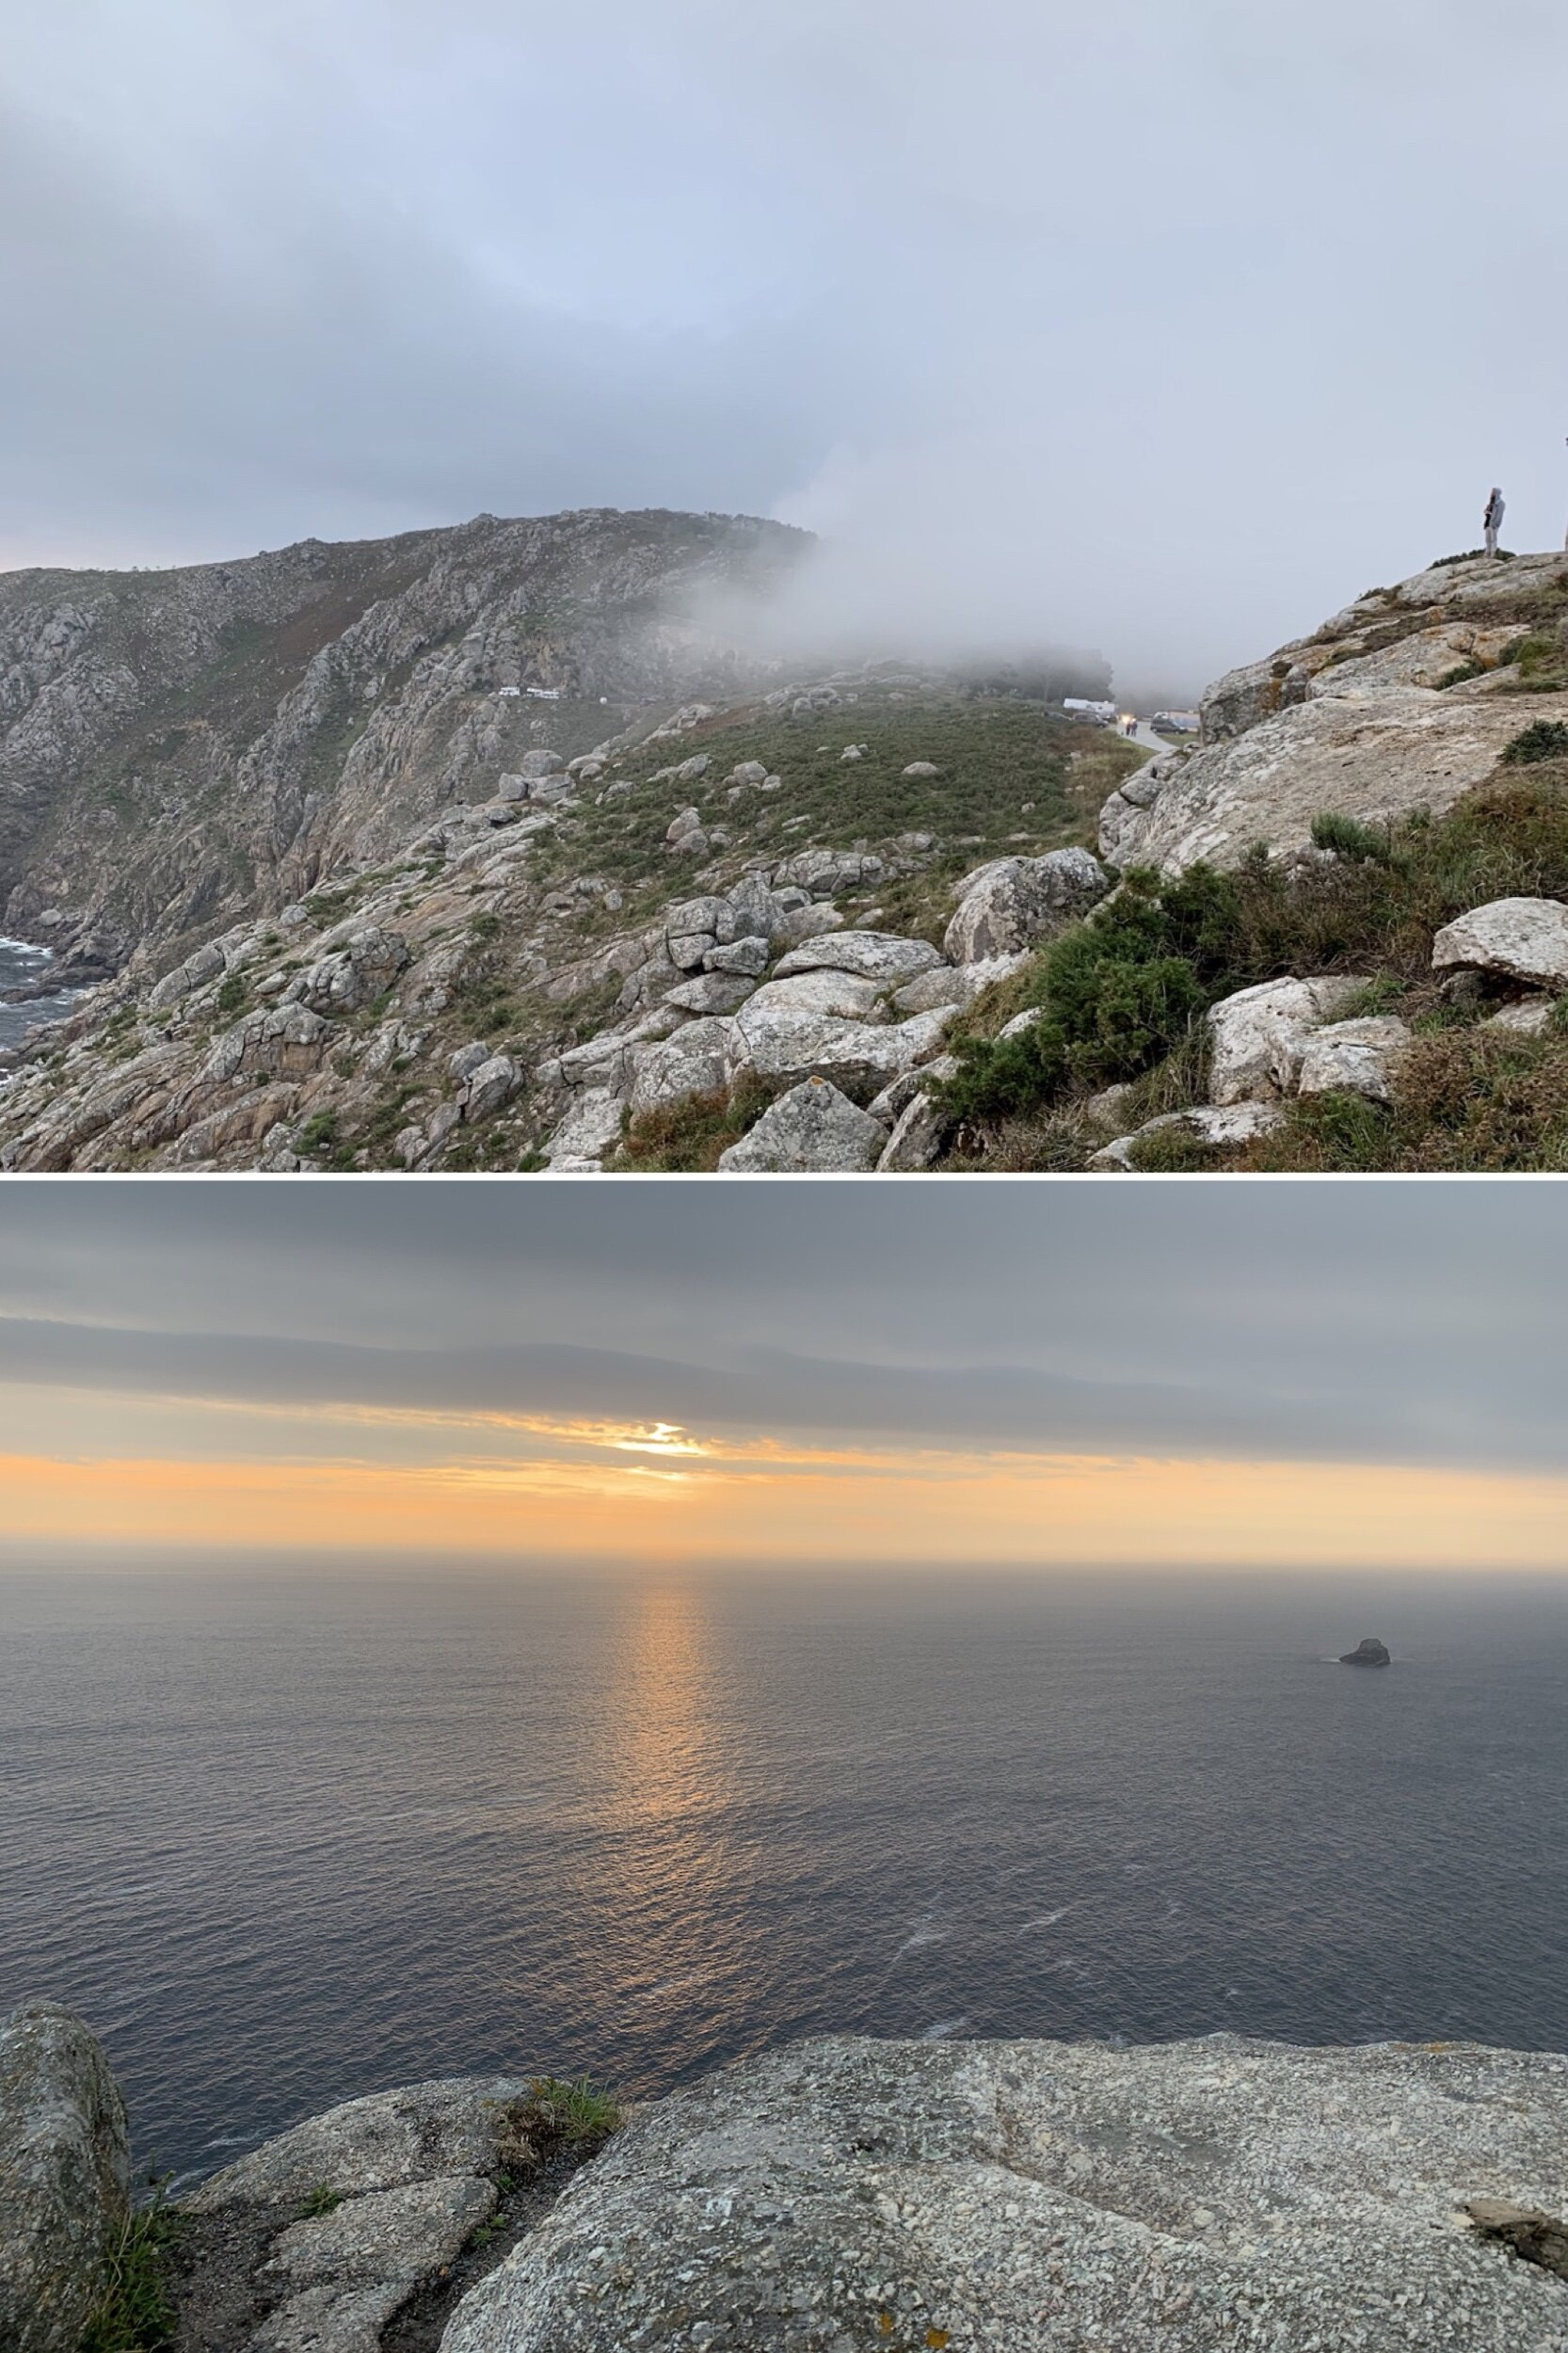 The Cabo is often shrouded in mist, but a break in the clouds revealed glimpses of the setting sun. The only sounds are the wind and the distant waves below and snatches of languages from all around the world.